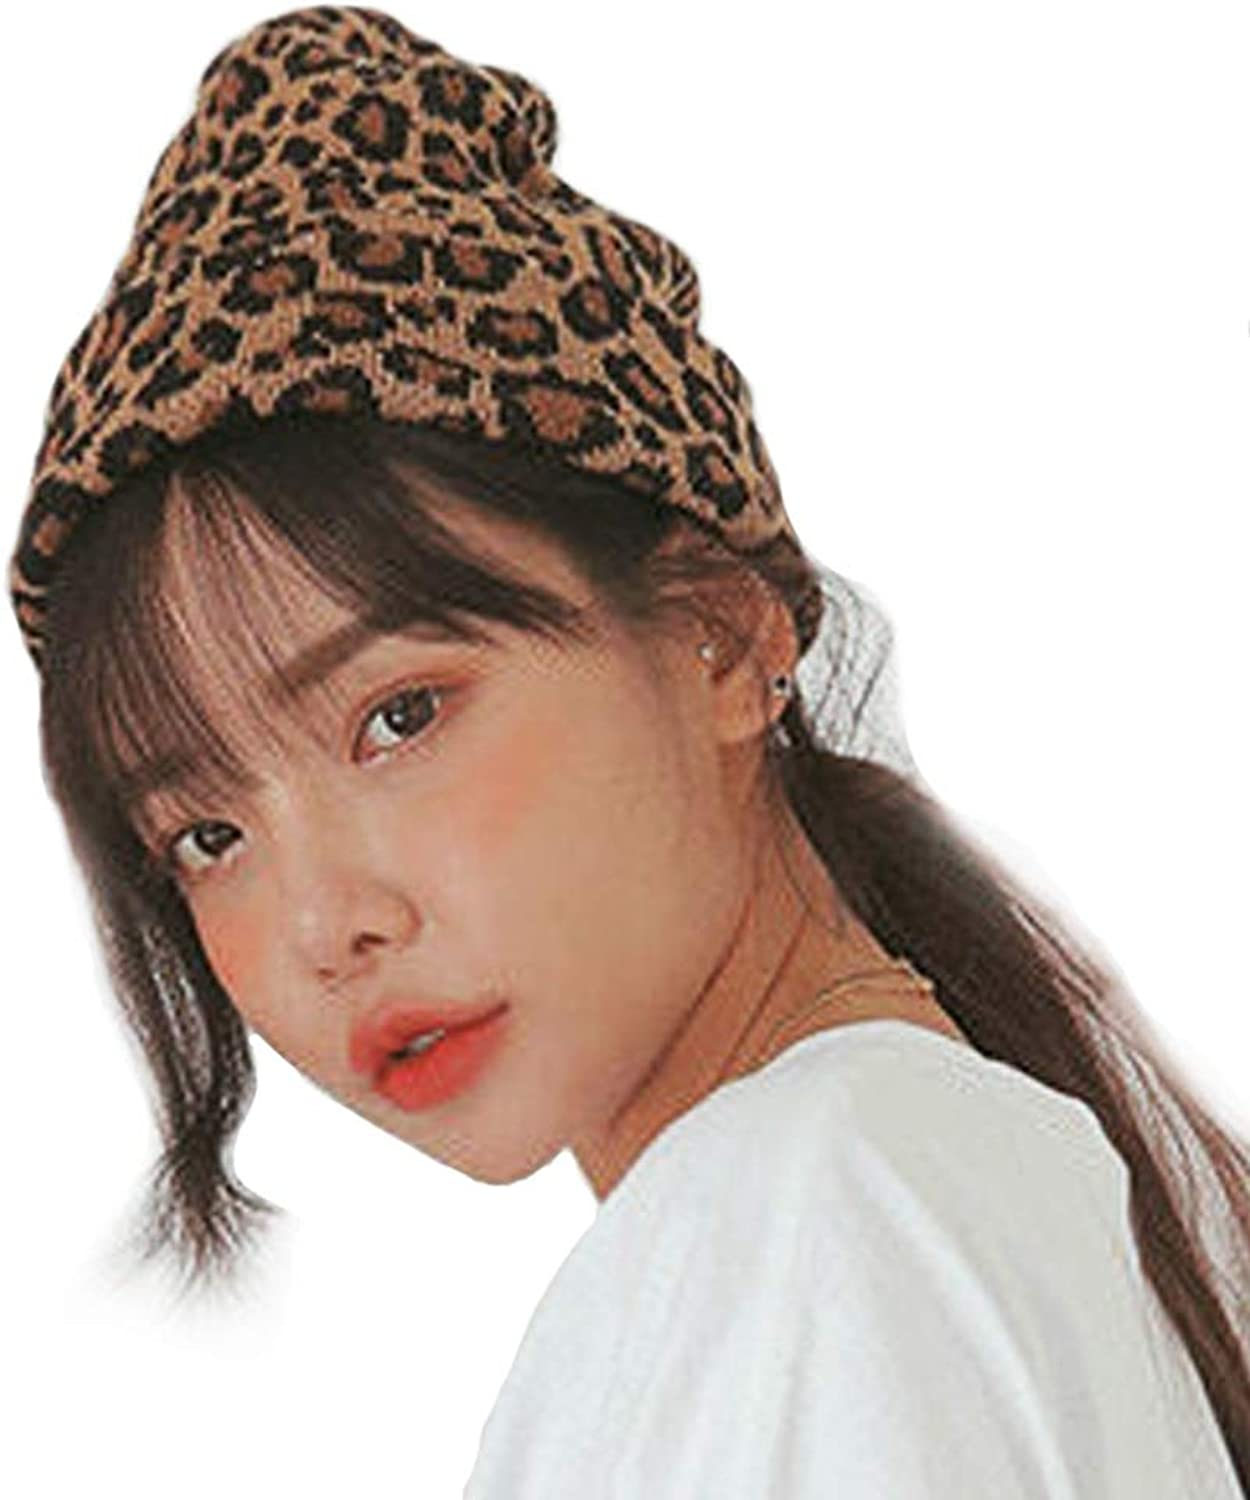 CRIZAN Women Girls Wool Blend Faux Fur Paisley Leopard Print Double Layers Winter Thick Slouchy Cable Knit Skull Hat Ski Cap